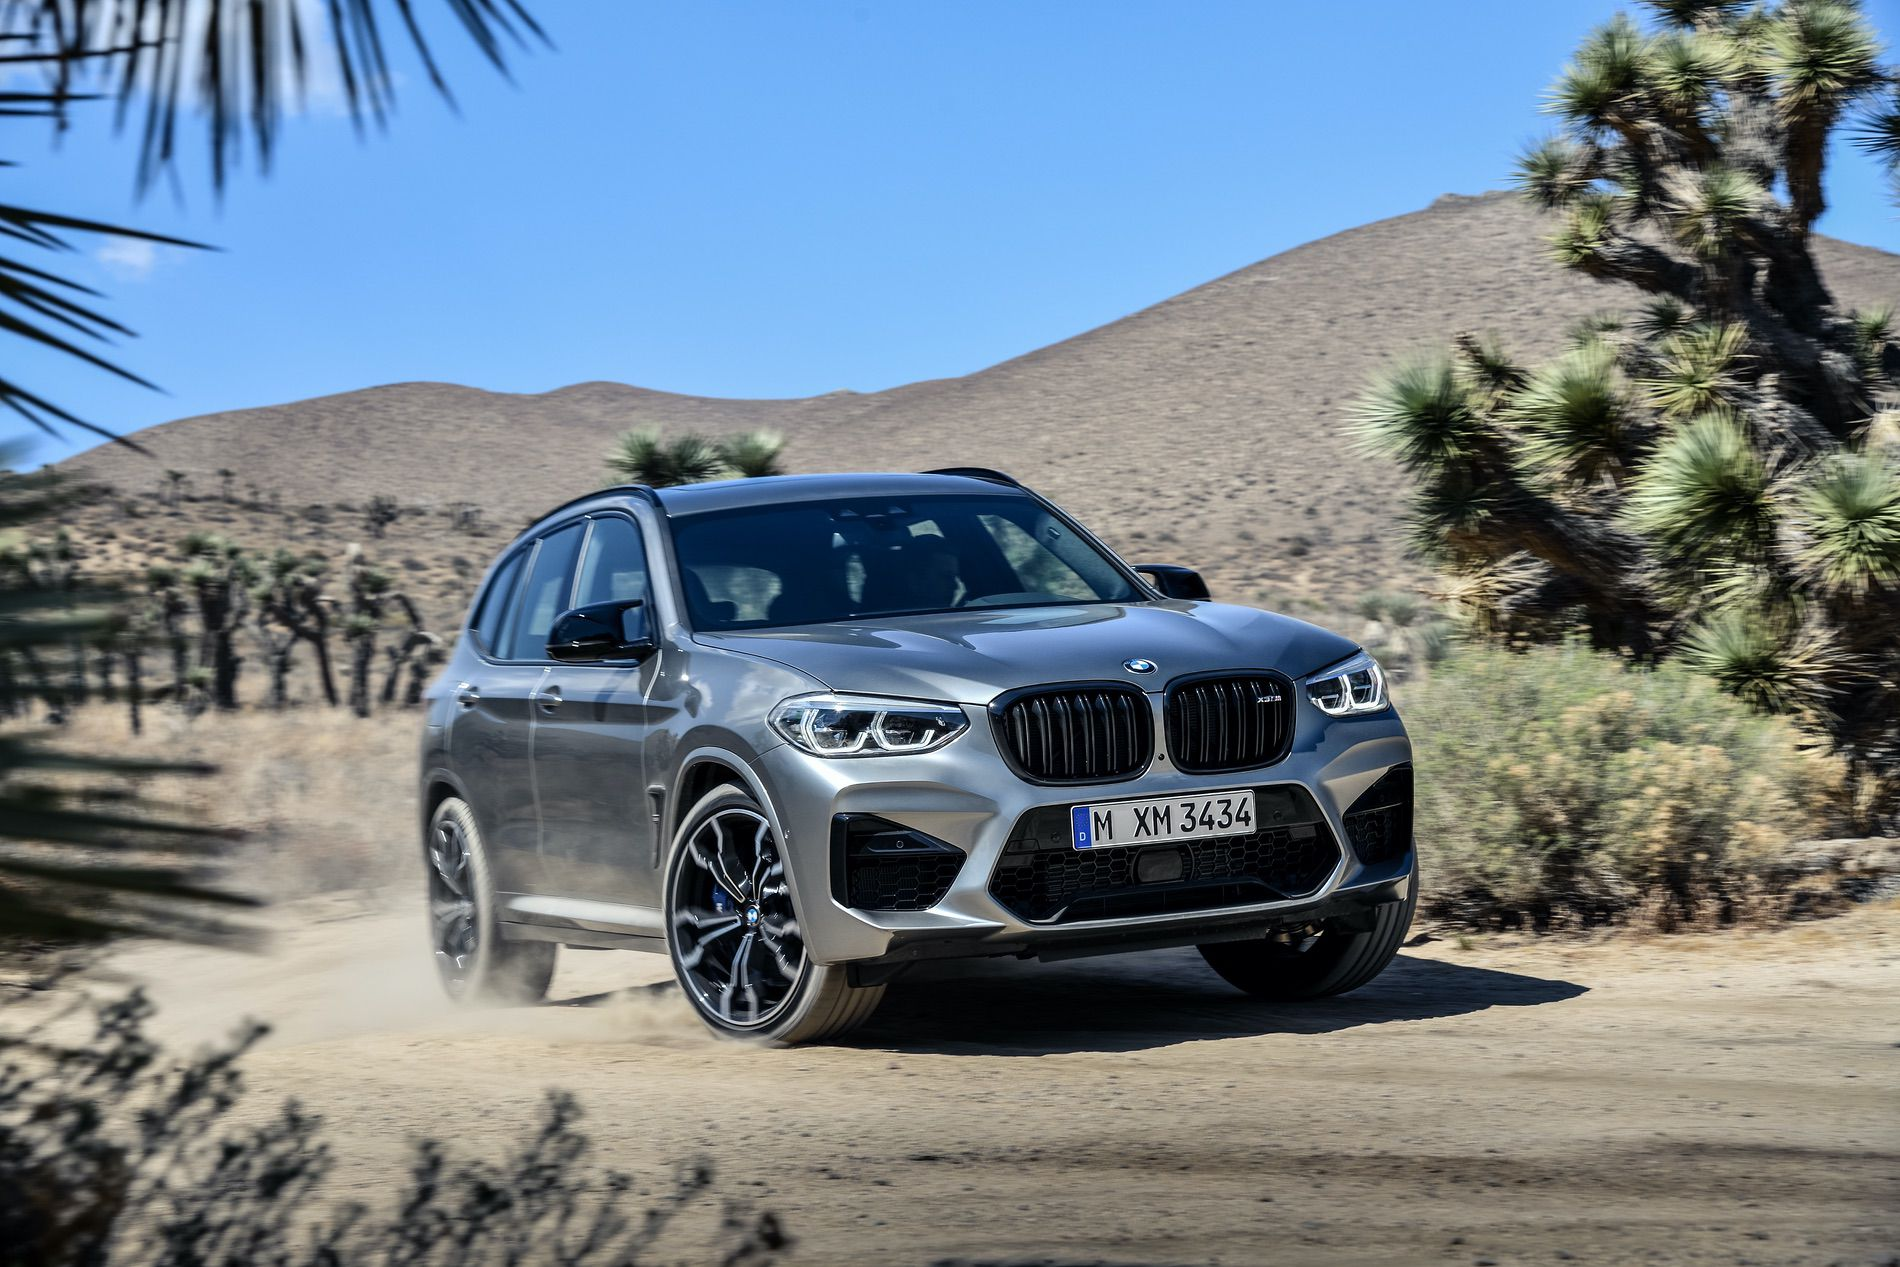 2019 BMW X3 M: V-6 Power, Design >> World Premiere Bmw X3 M And X3 M Competition M Division S Most